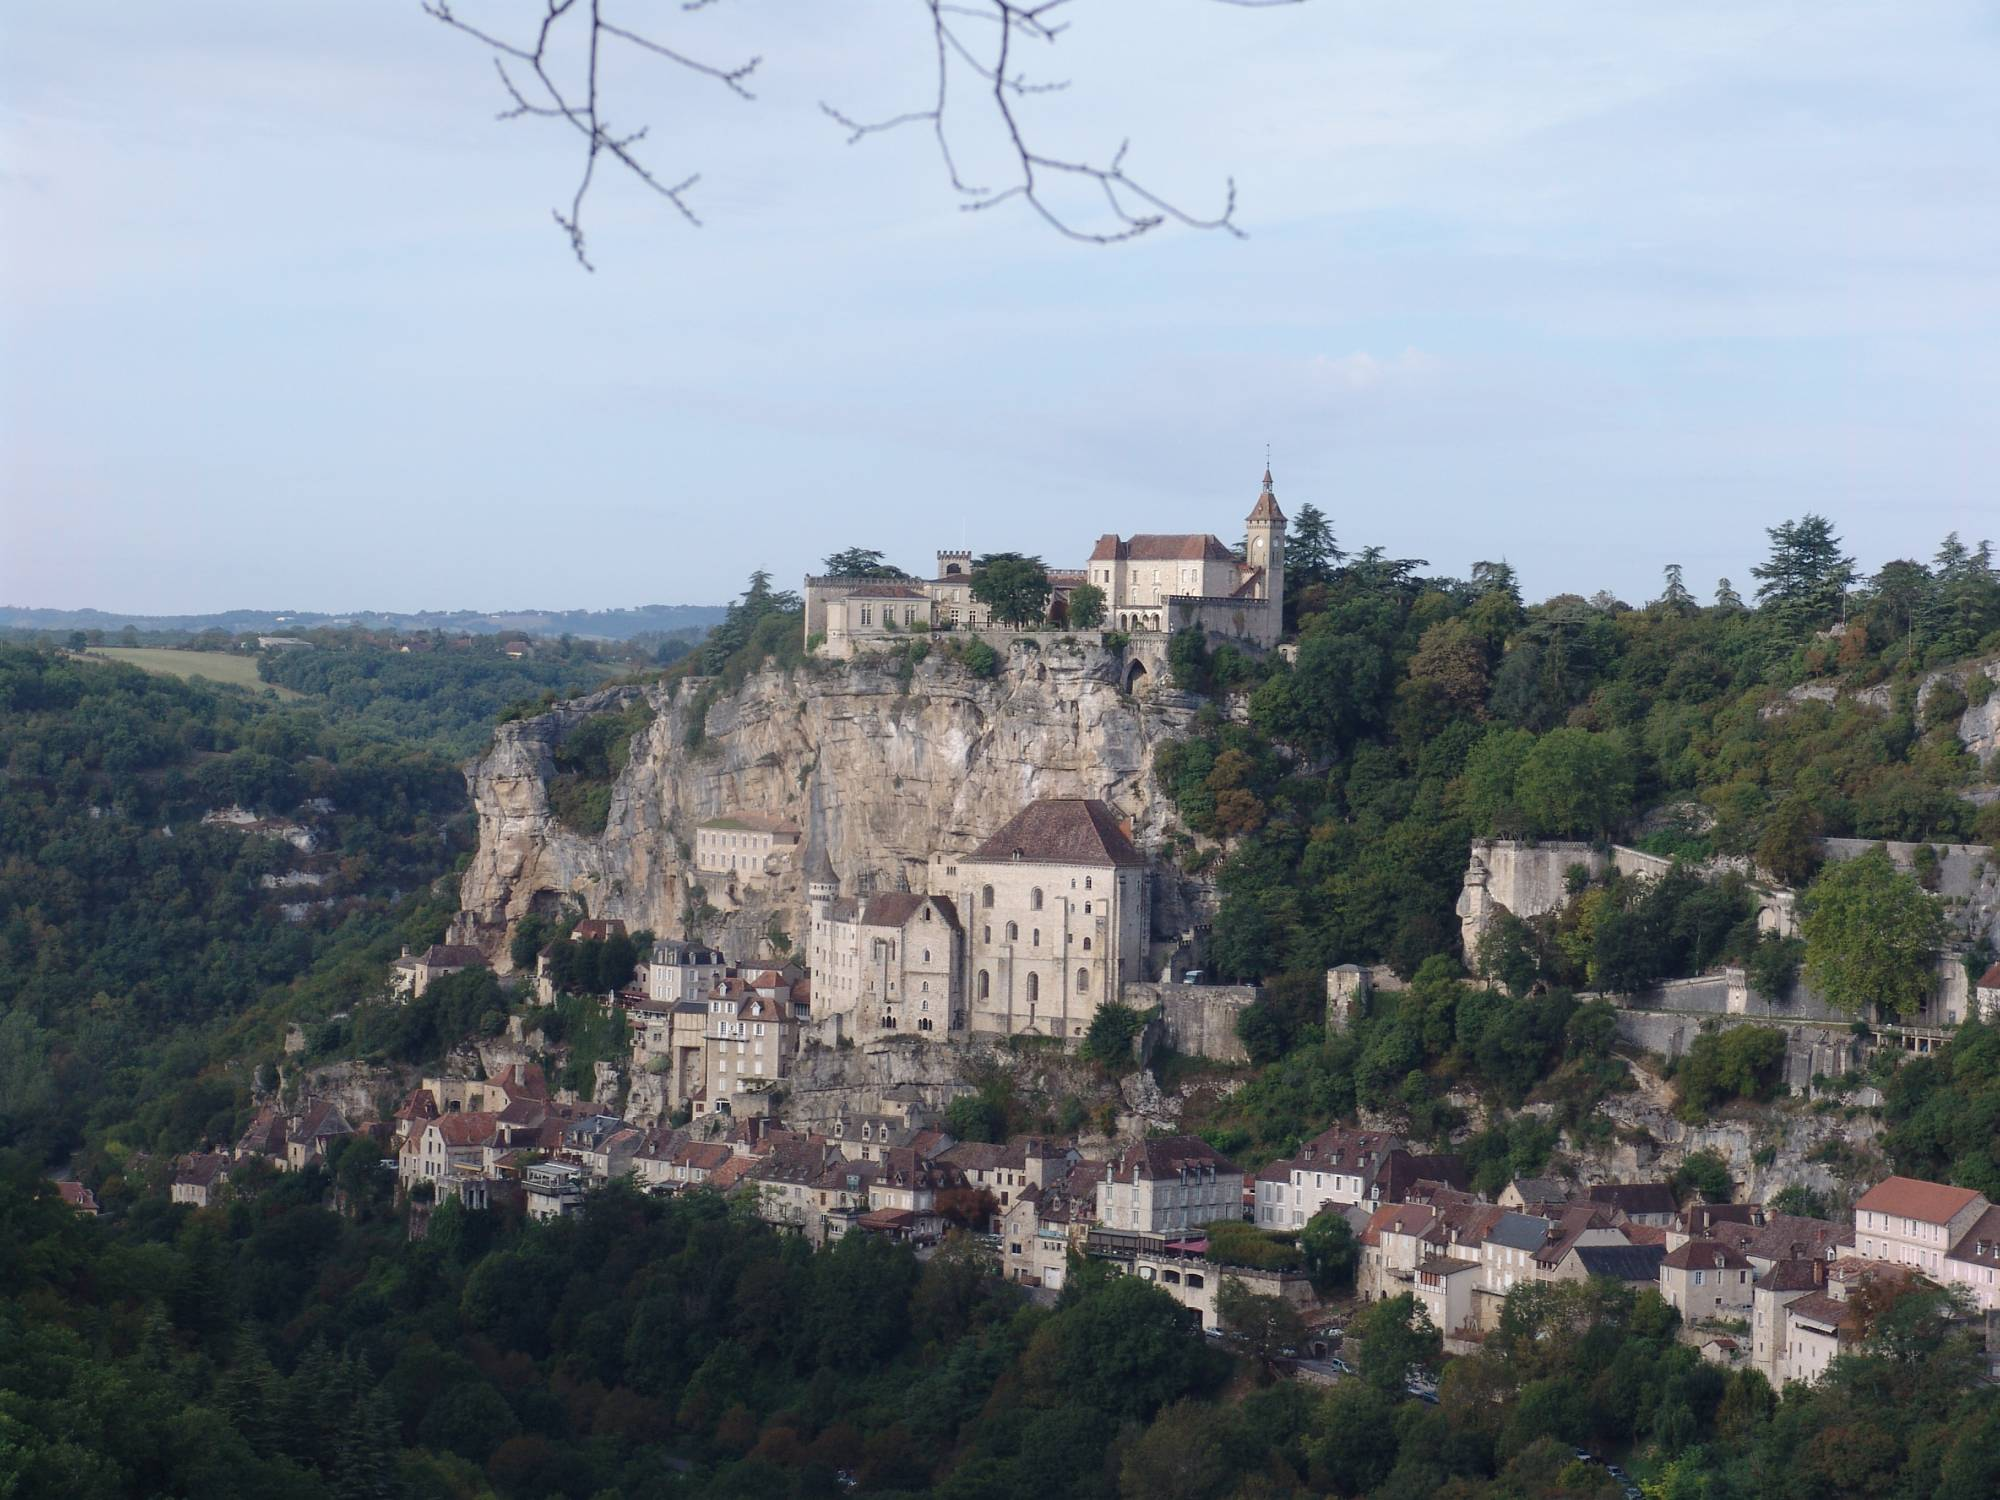 France - Rocamadour photo